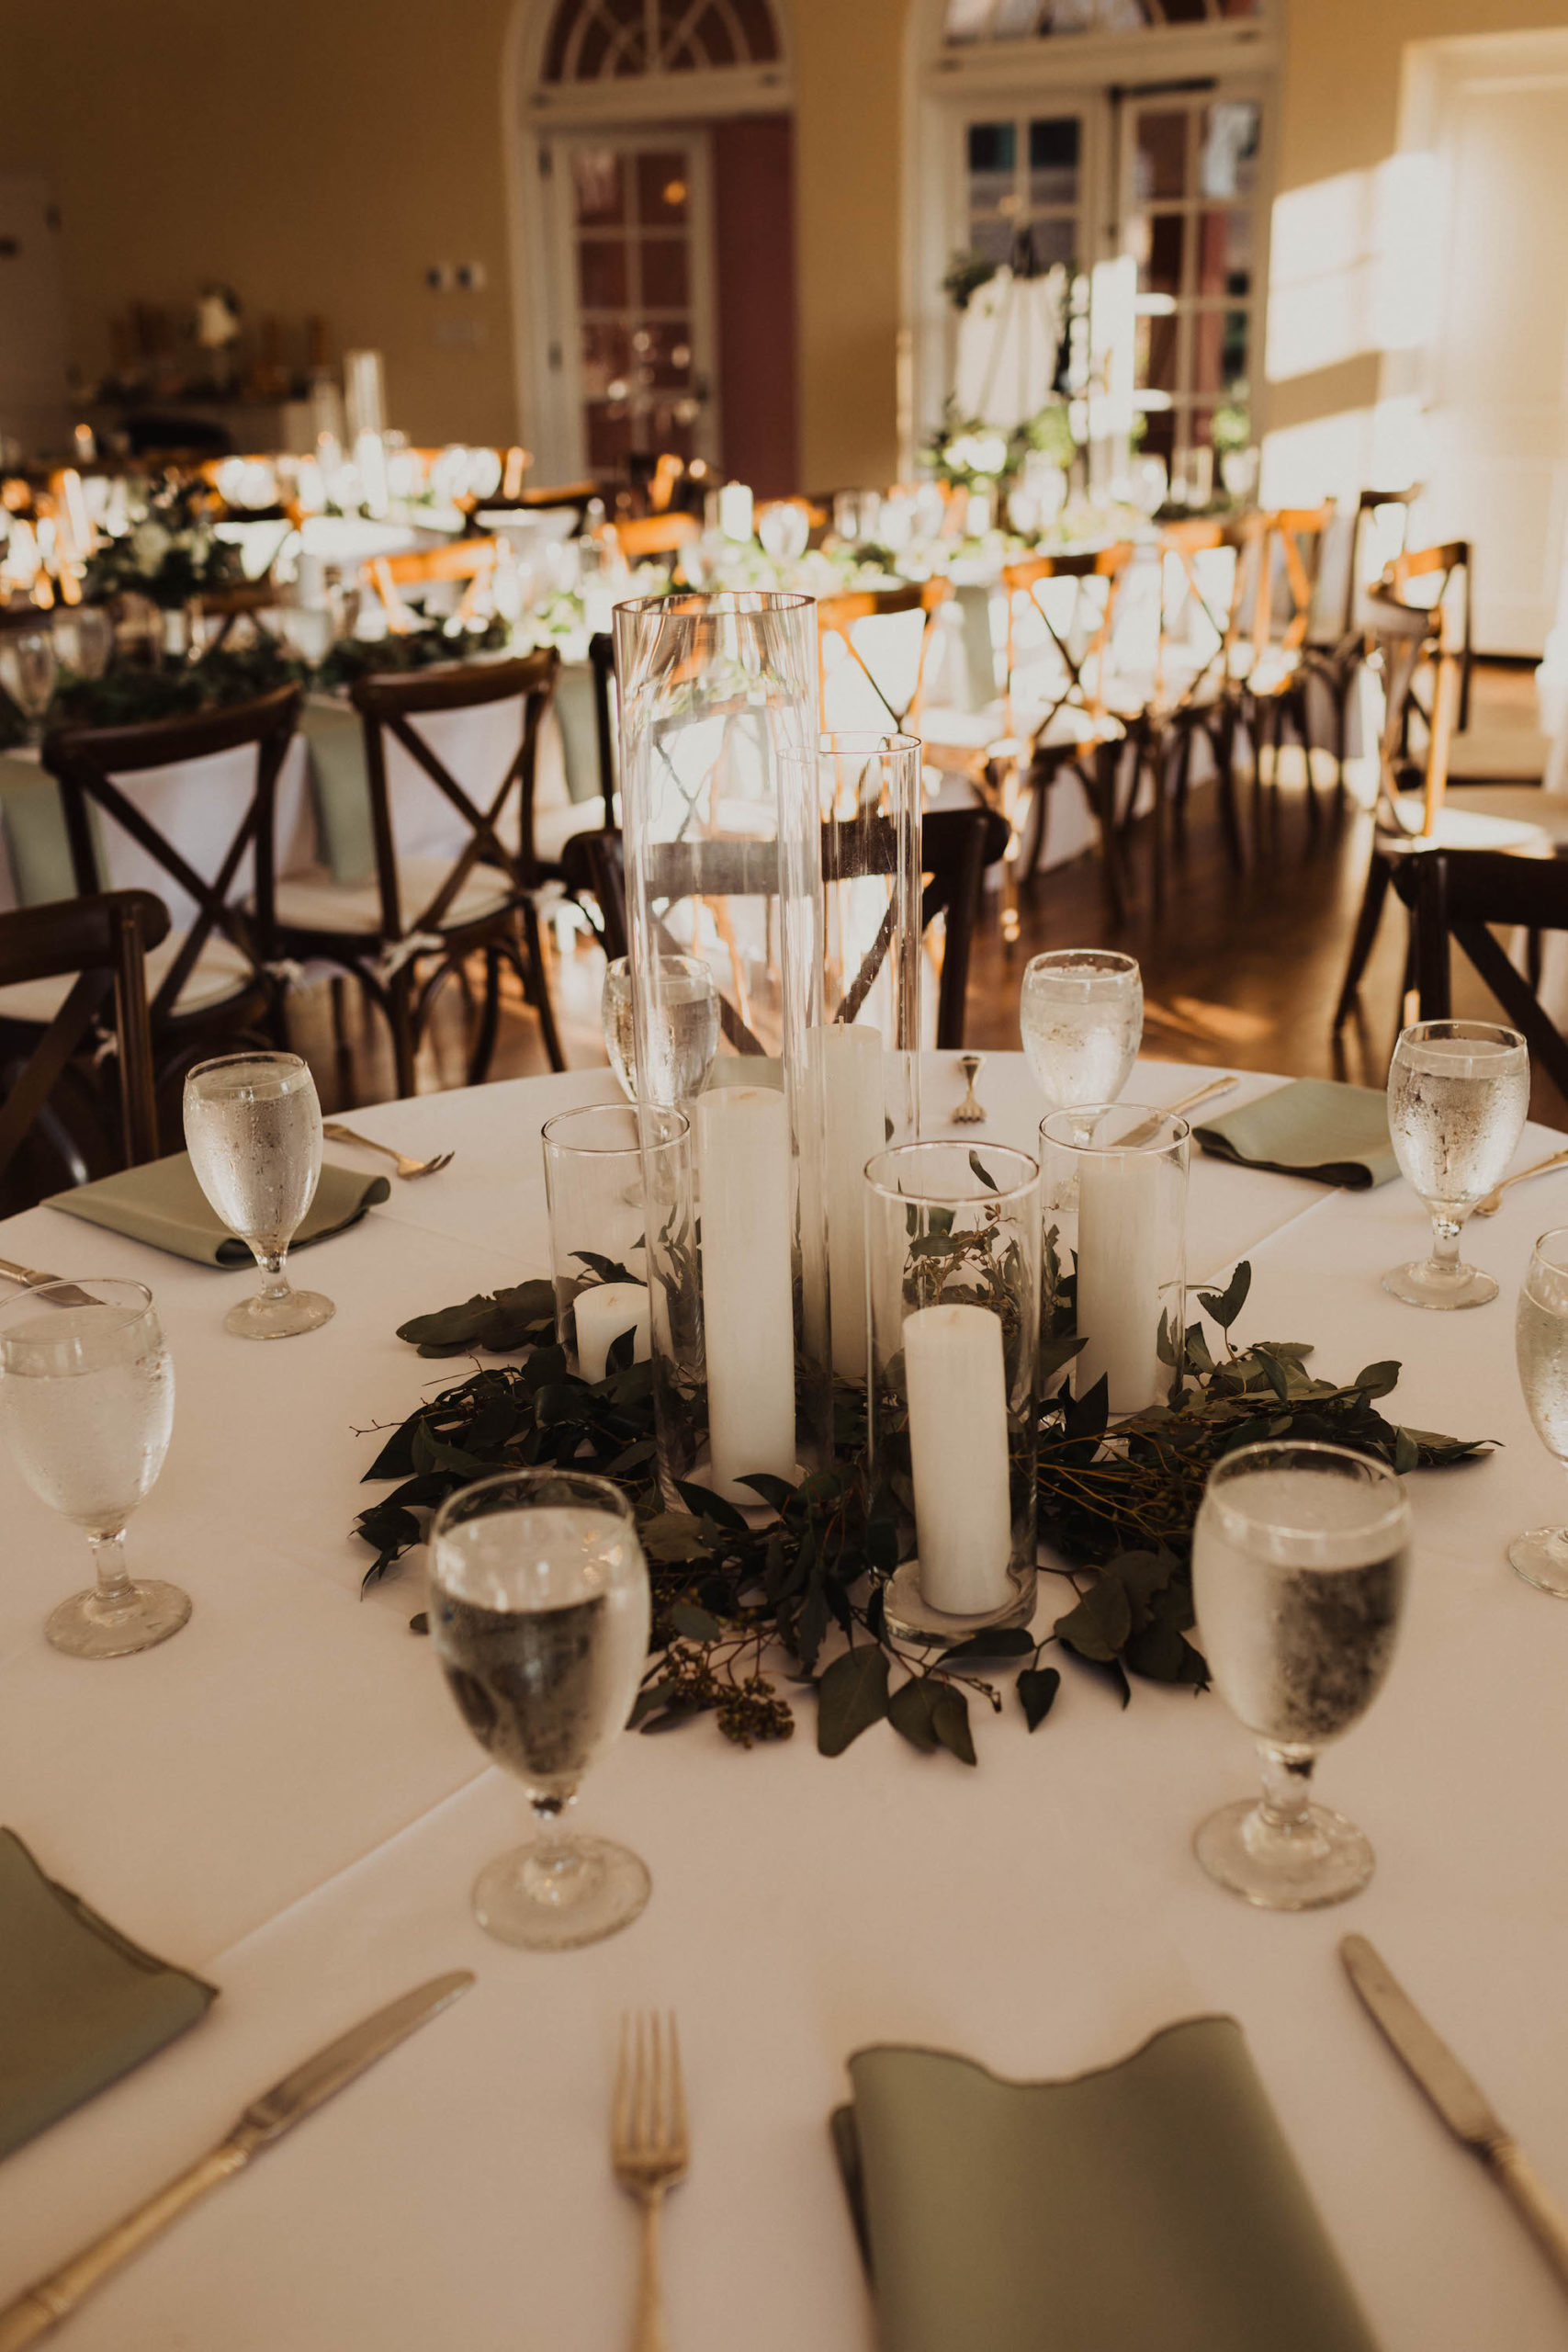 Simple, Elegant Wedding Reception Decor, Hurricane Glass Cylinder Vases and Candles with Eucalyptus Wreath | South Tampa Wedding Venue The Orlo